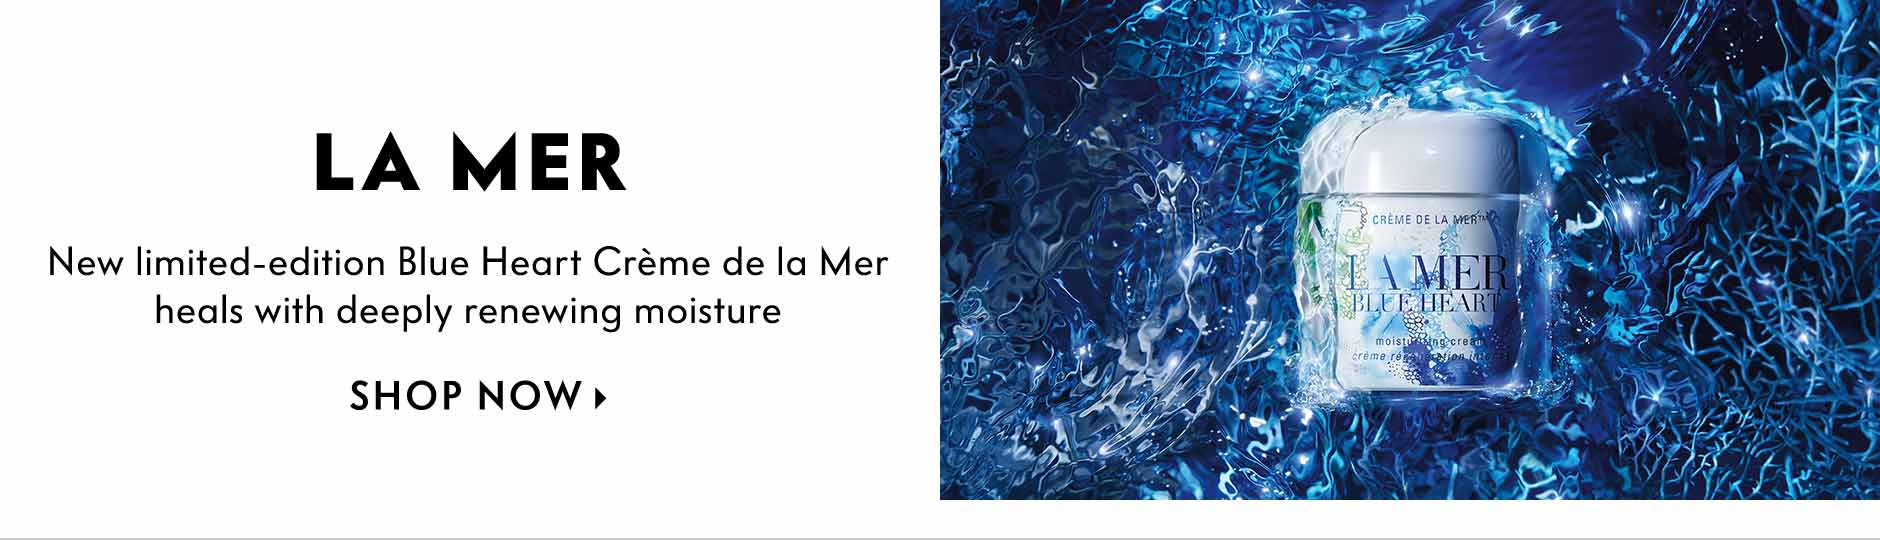 La Mer - New limited-edition Blue Heart Creme de la Mer heals with deeply renewing moisture